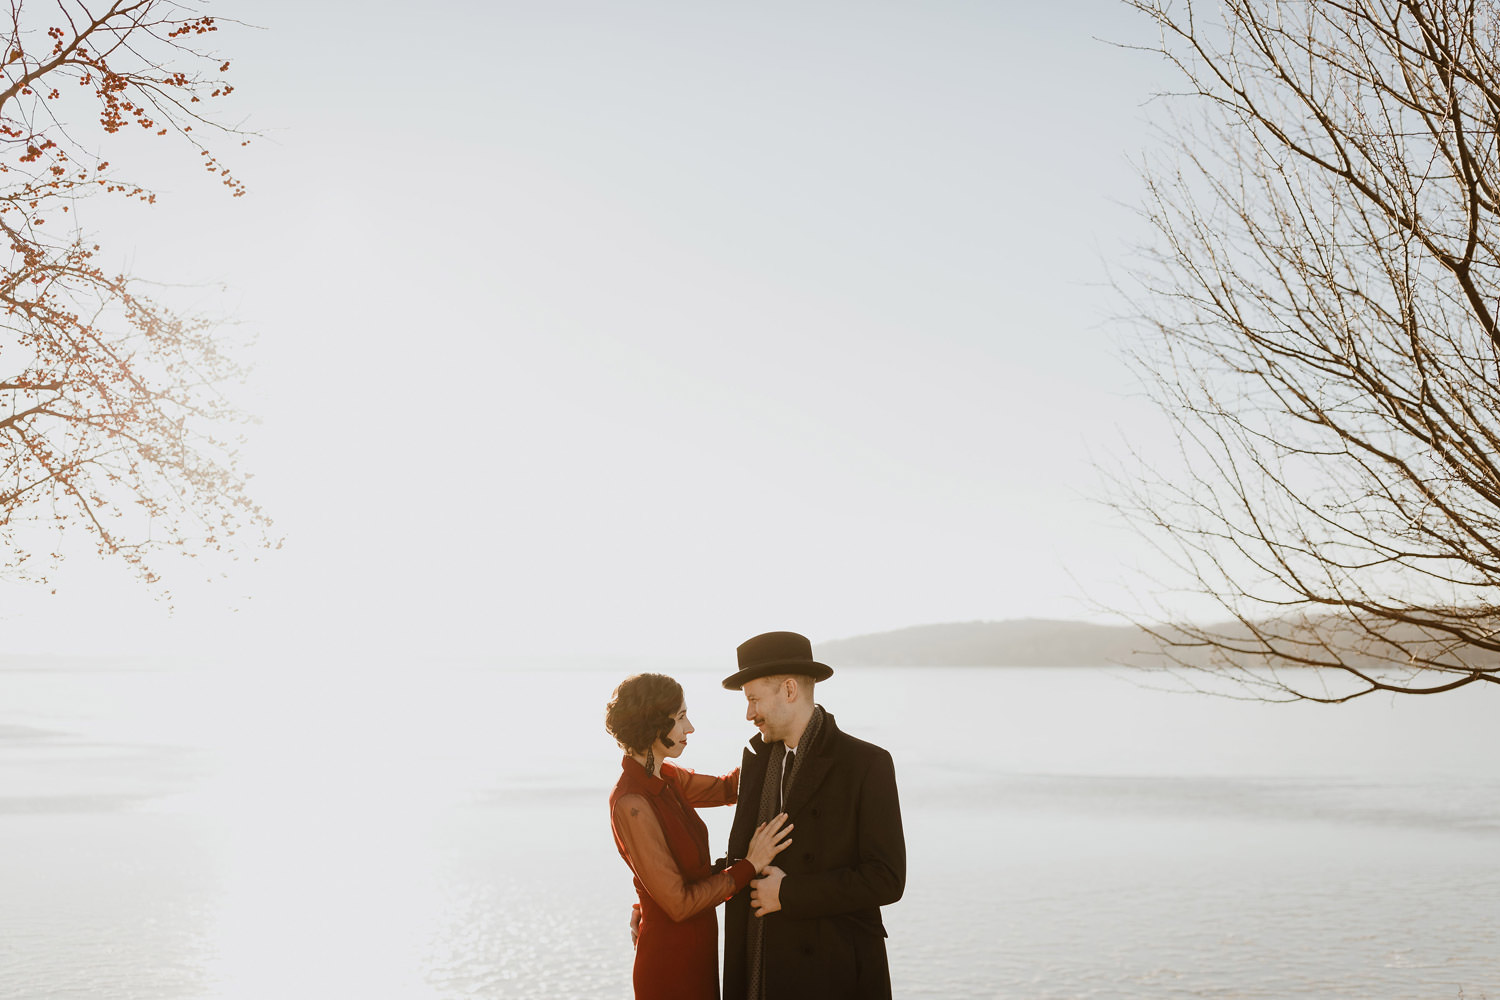 Intimate moment between bride and groom captured by Lake Geneva on their wedding day